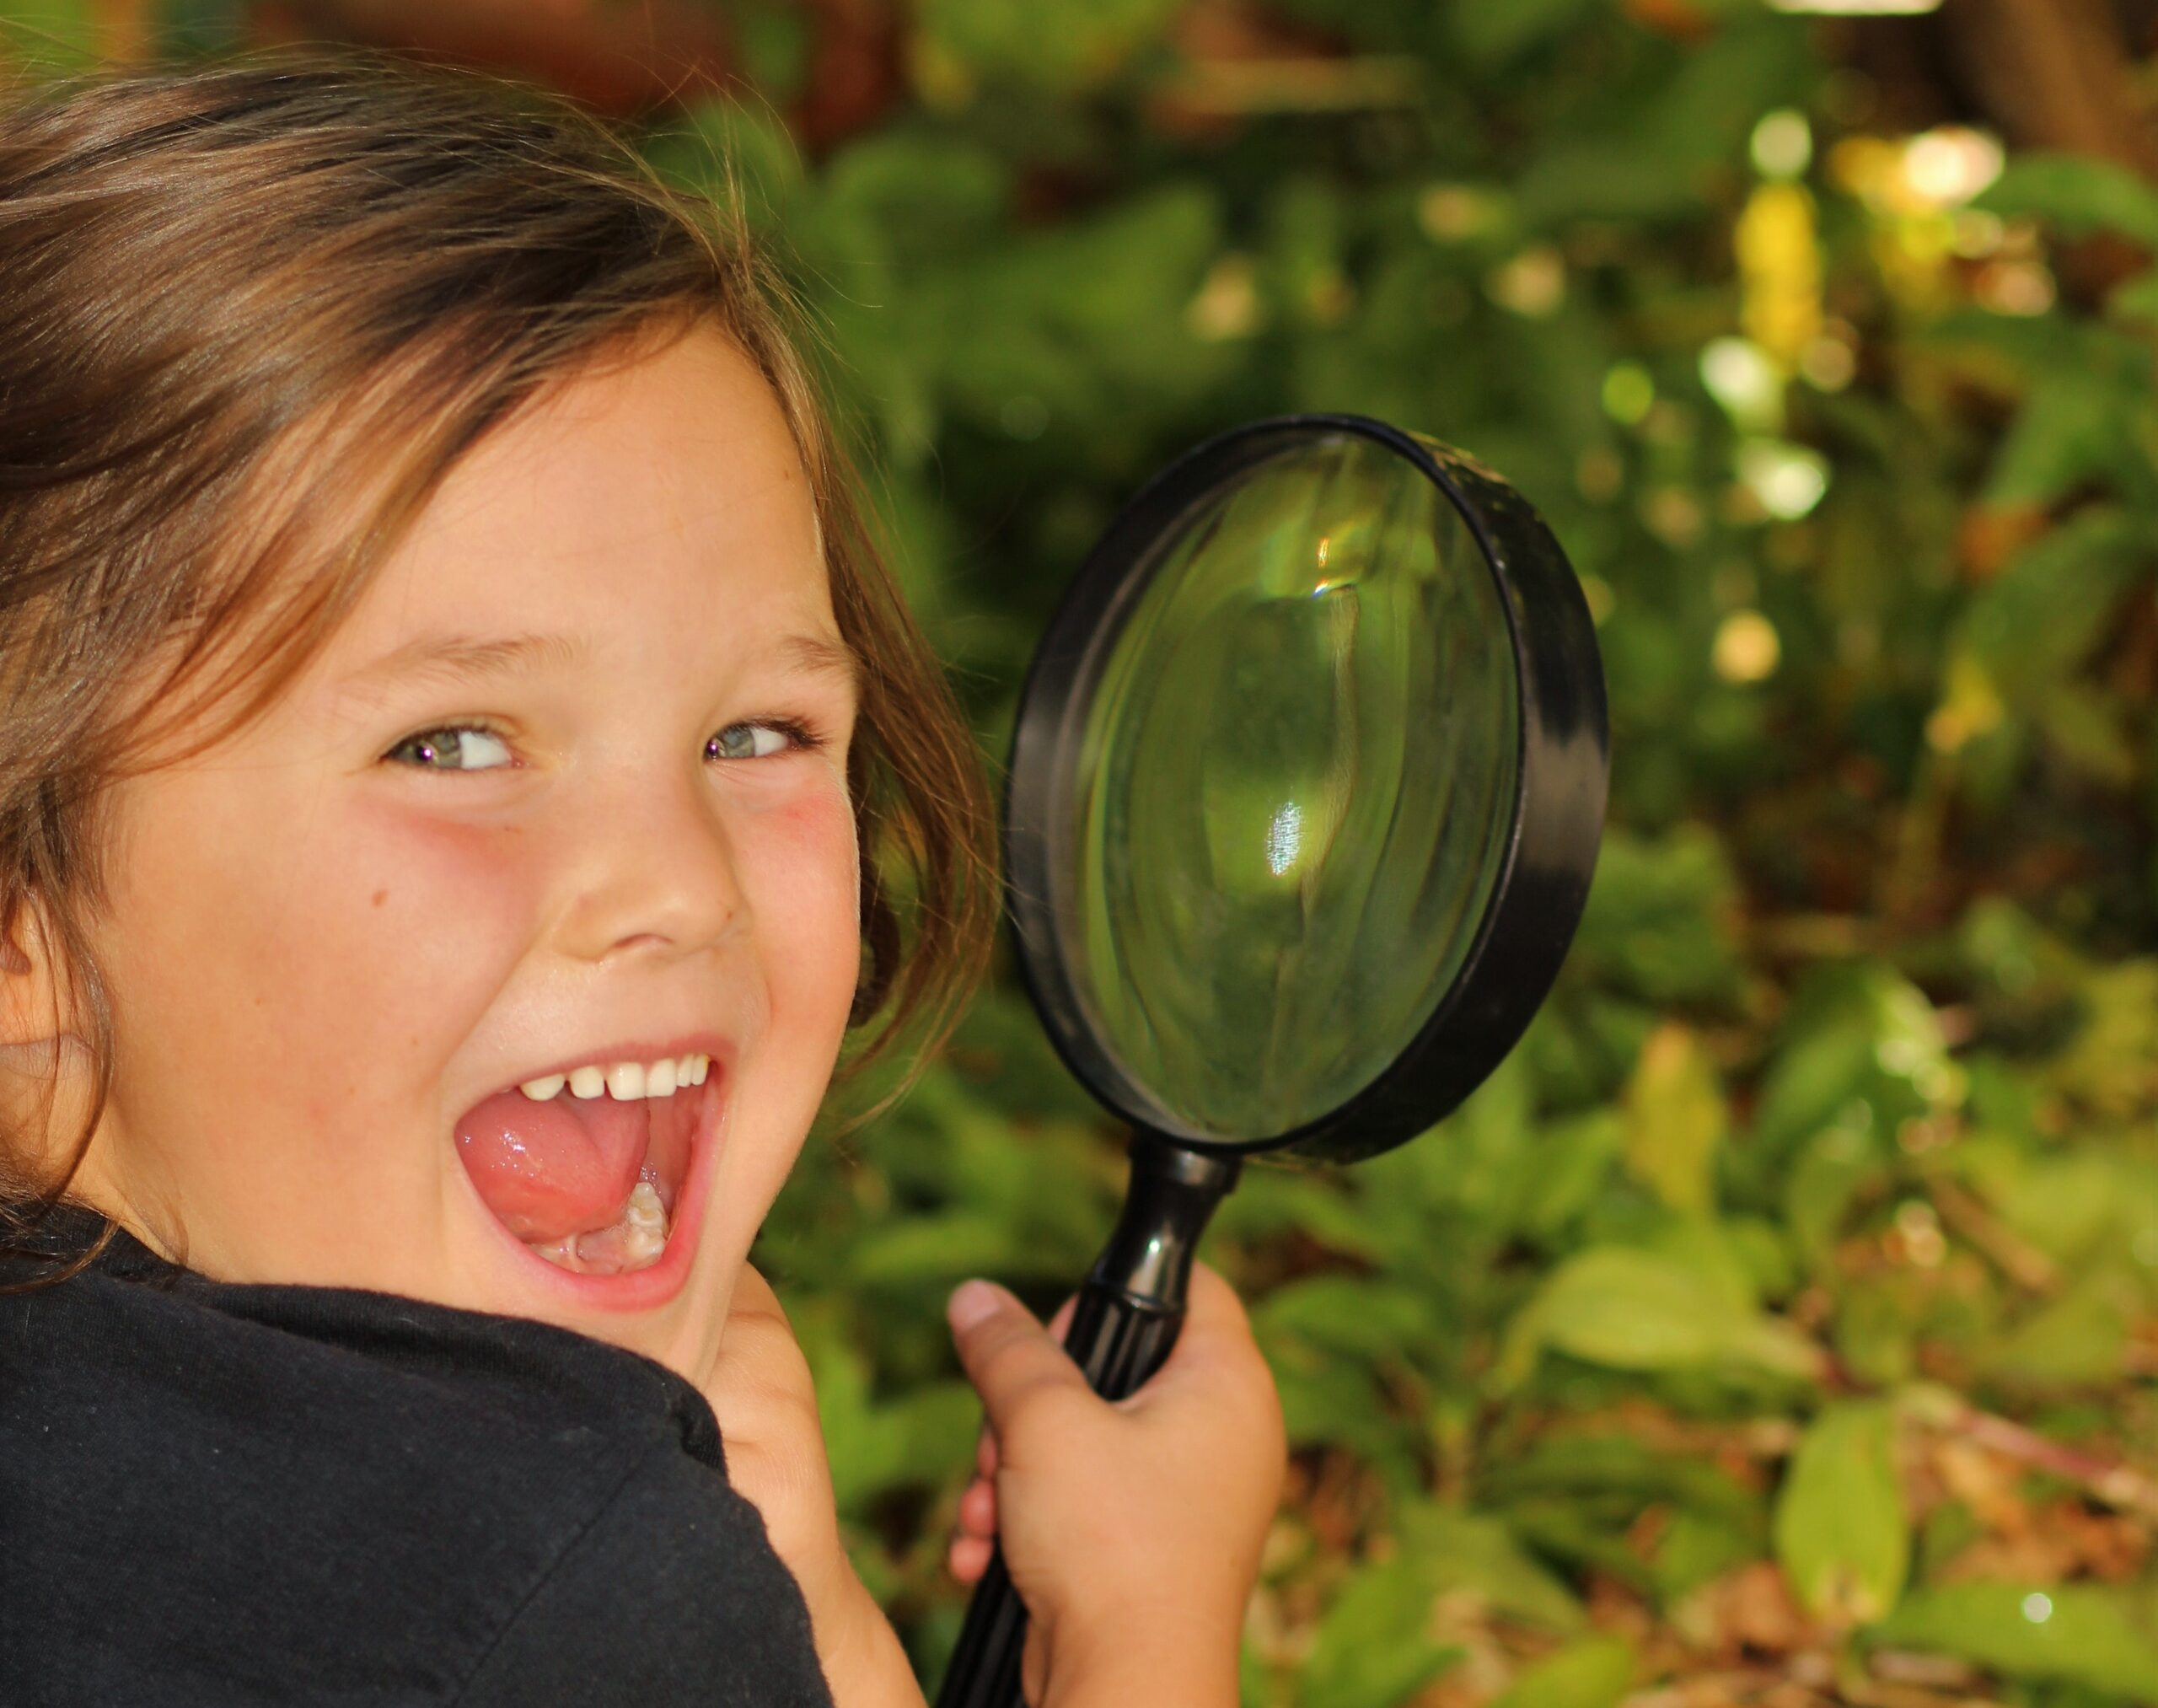 Photograph of a child with a magnifying glass